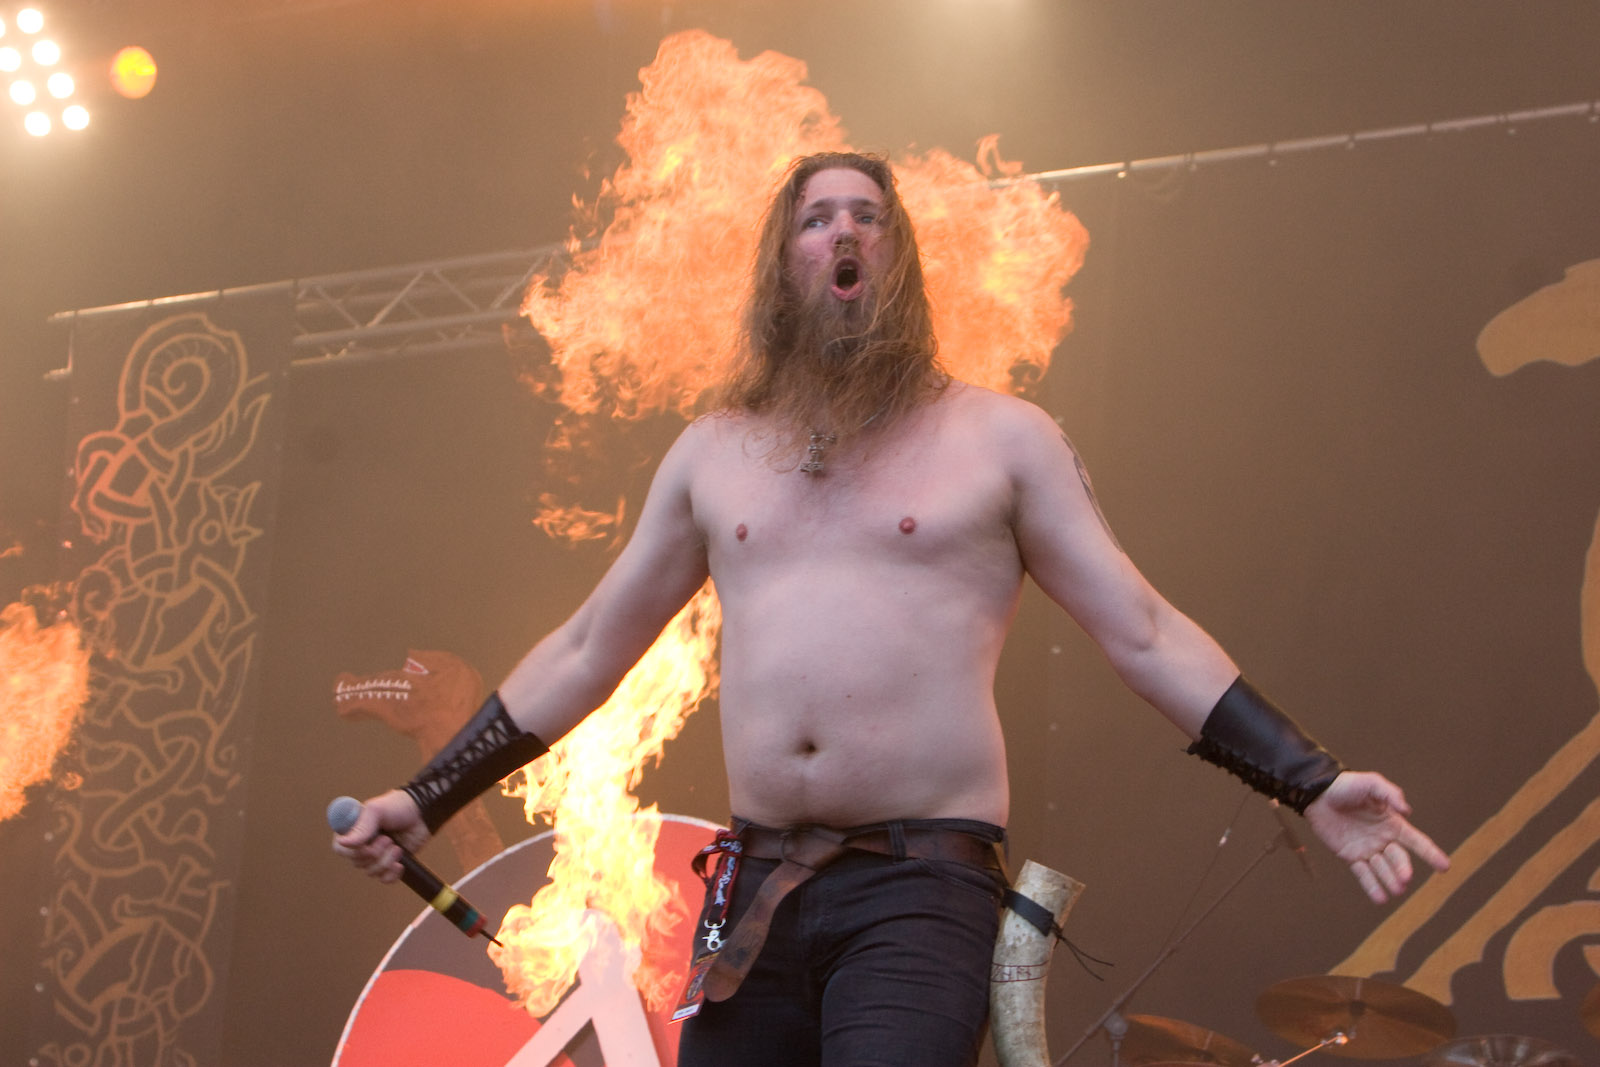 http://upload.wikimedia.org/wikipedia/commons/c/ce/Amon_Amarth-Johan_Hegg-1128.jpg